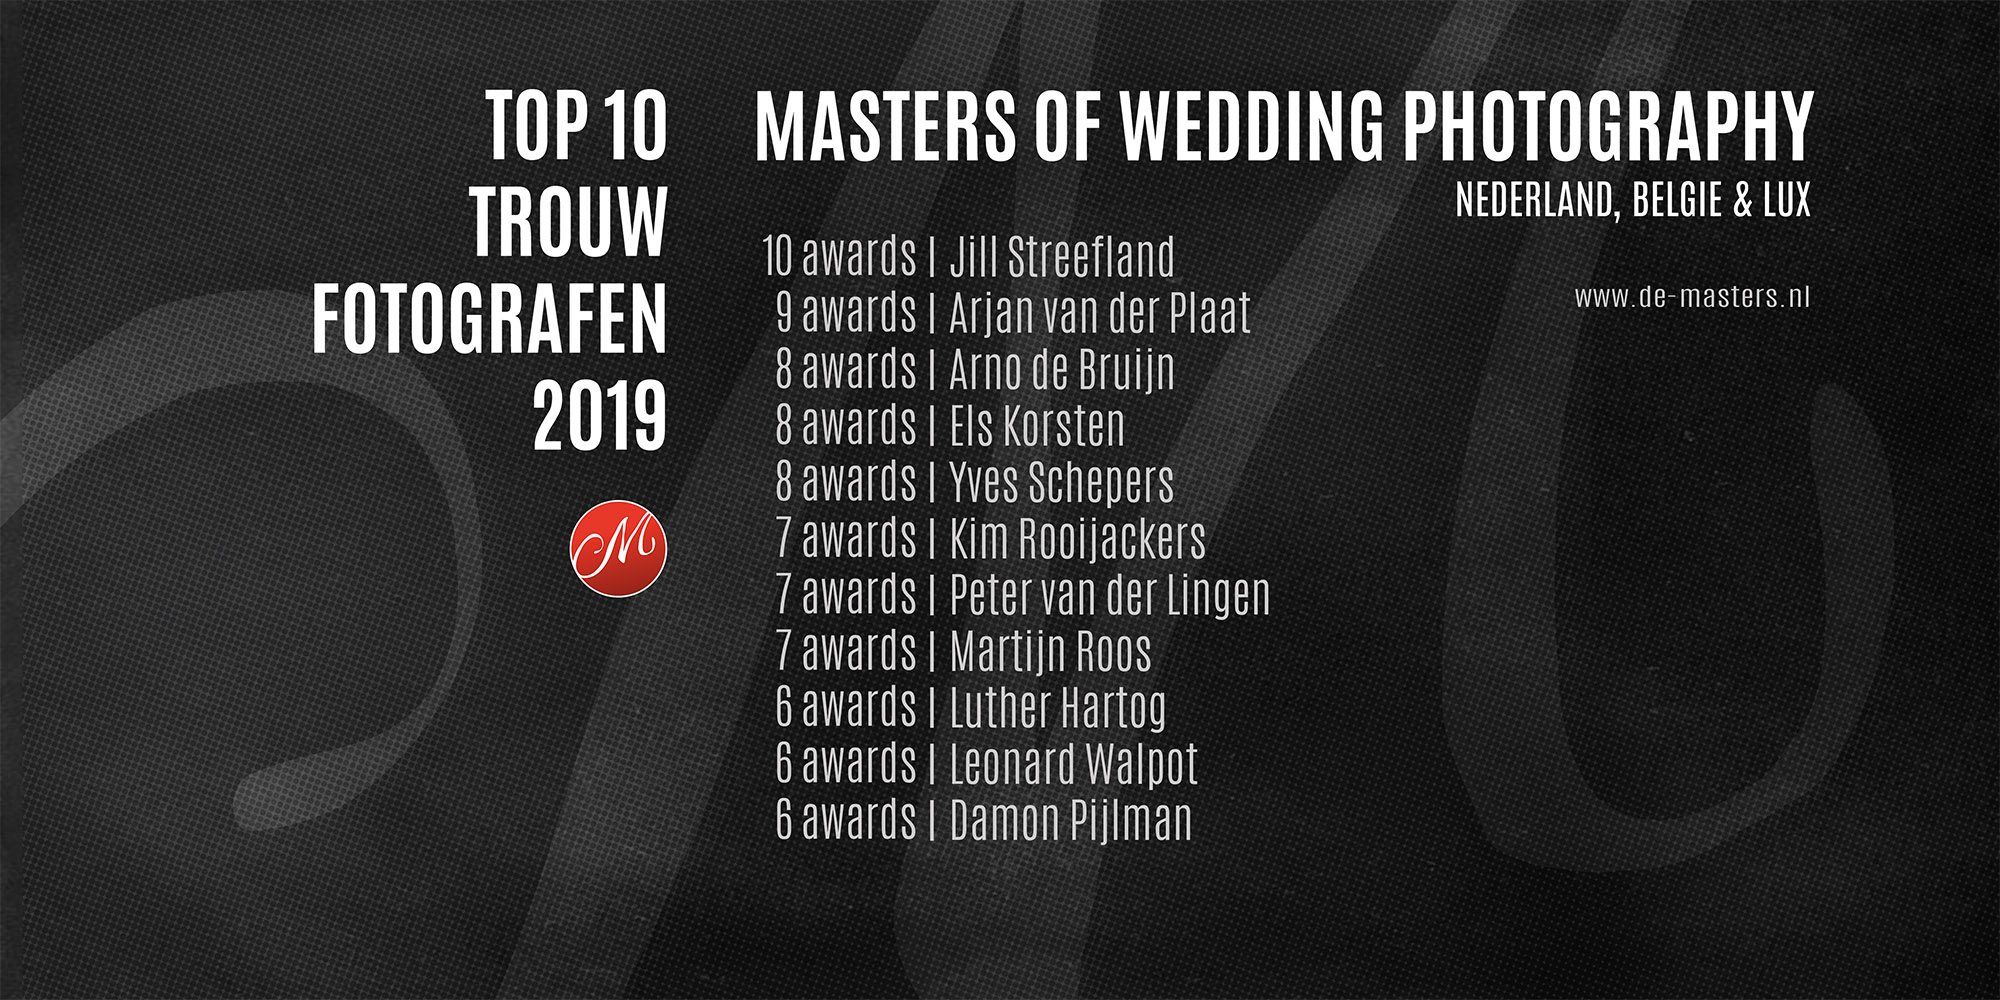 Top10 Masters 2019 NL